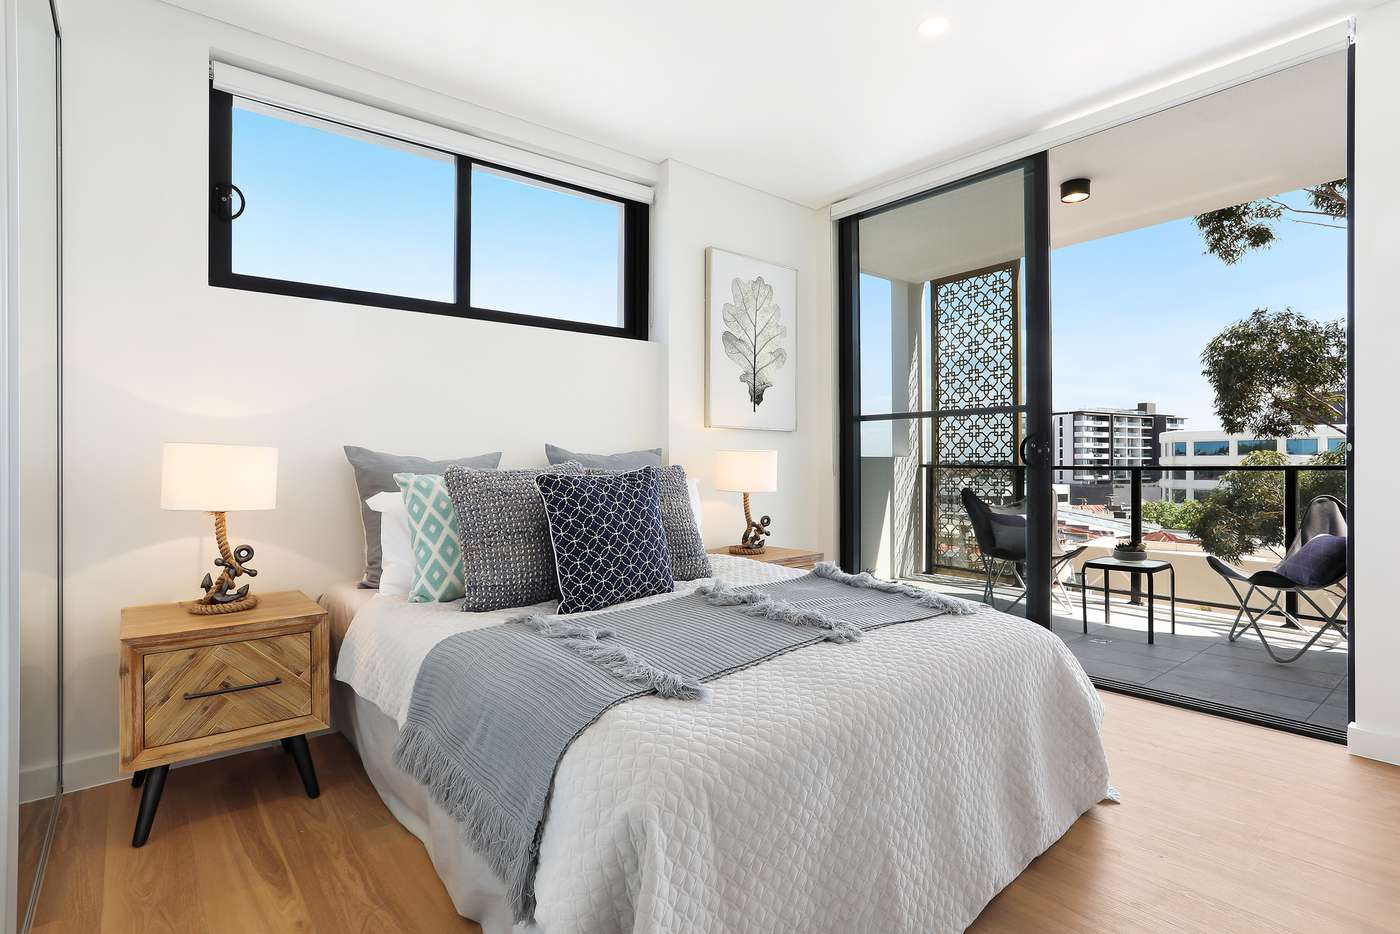 Fifth view of Homely apartment listing, 401/2 Murrell Street, Ashfield NSW 2131